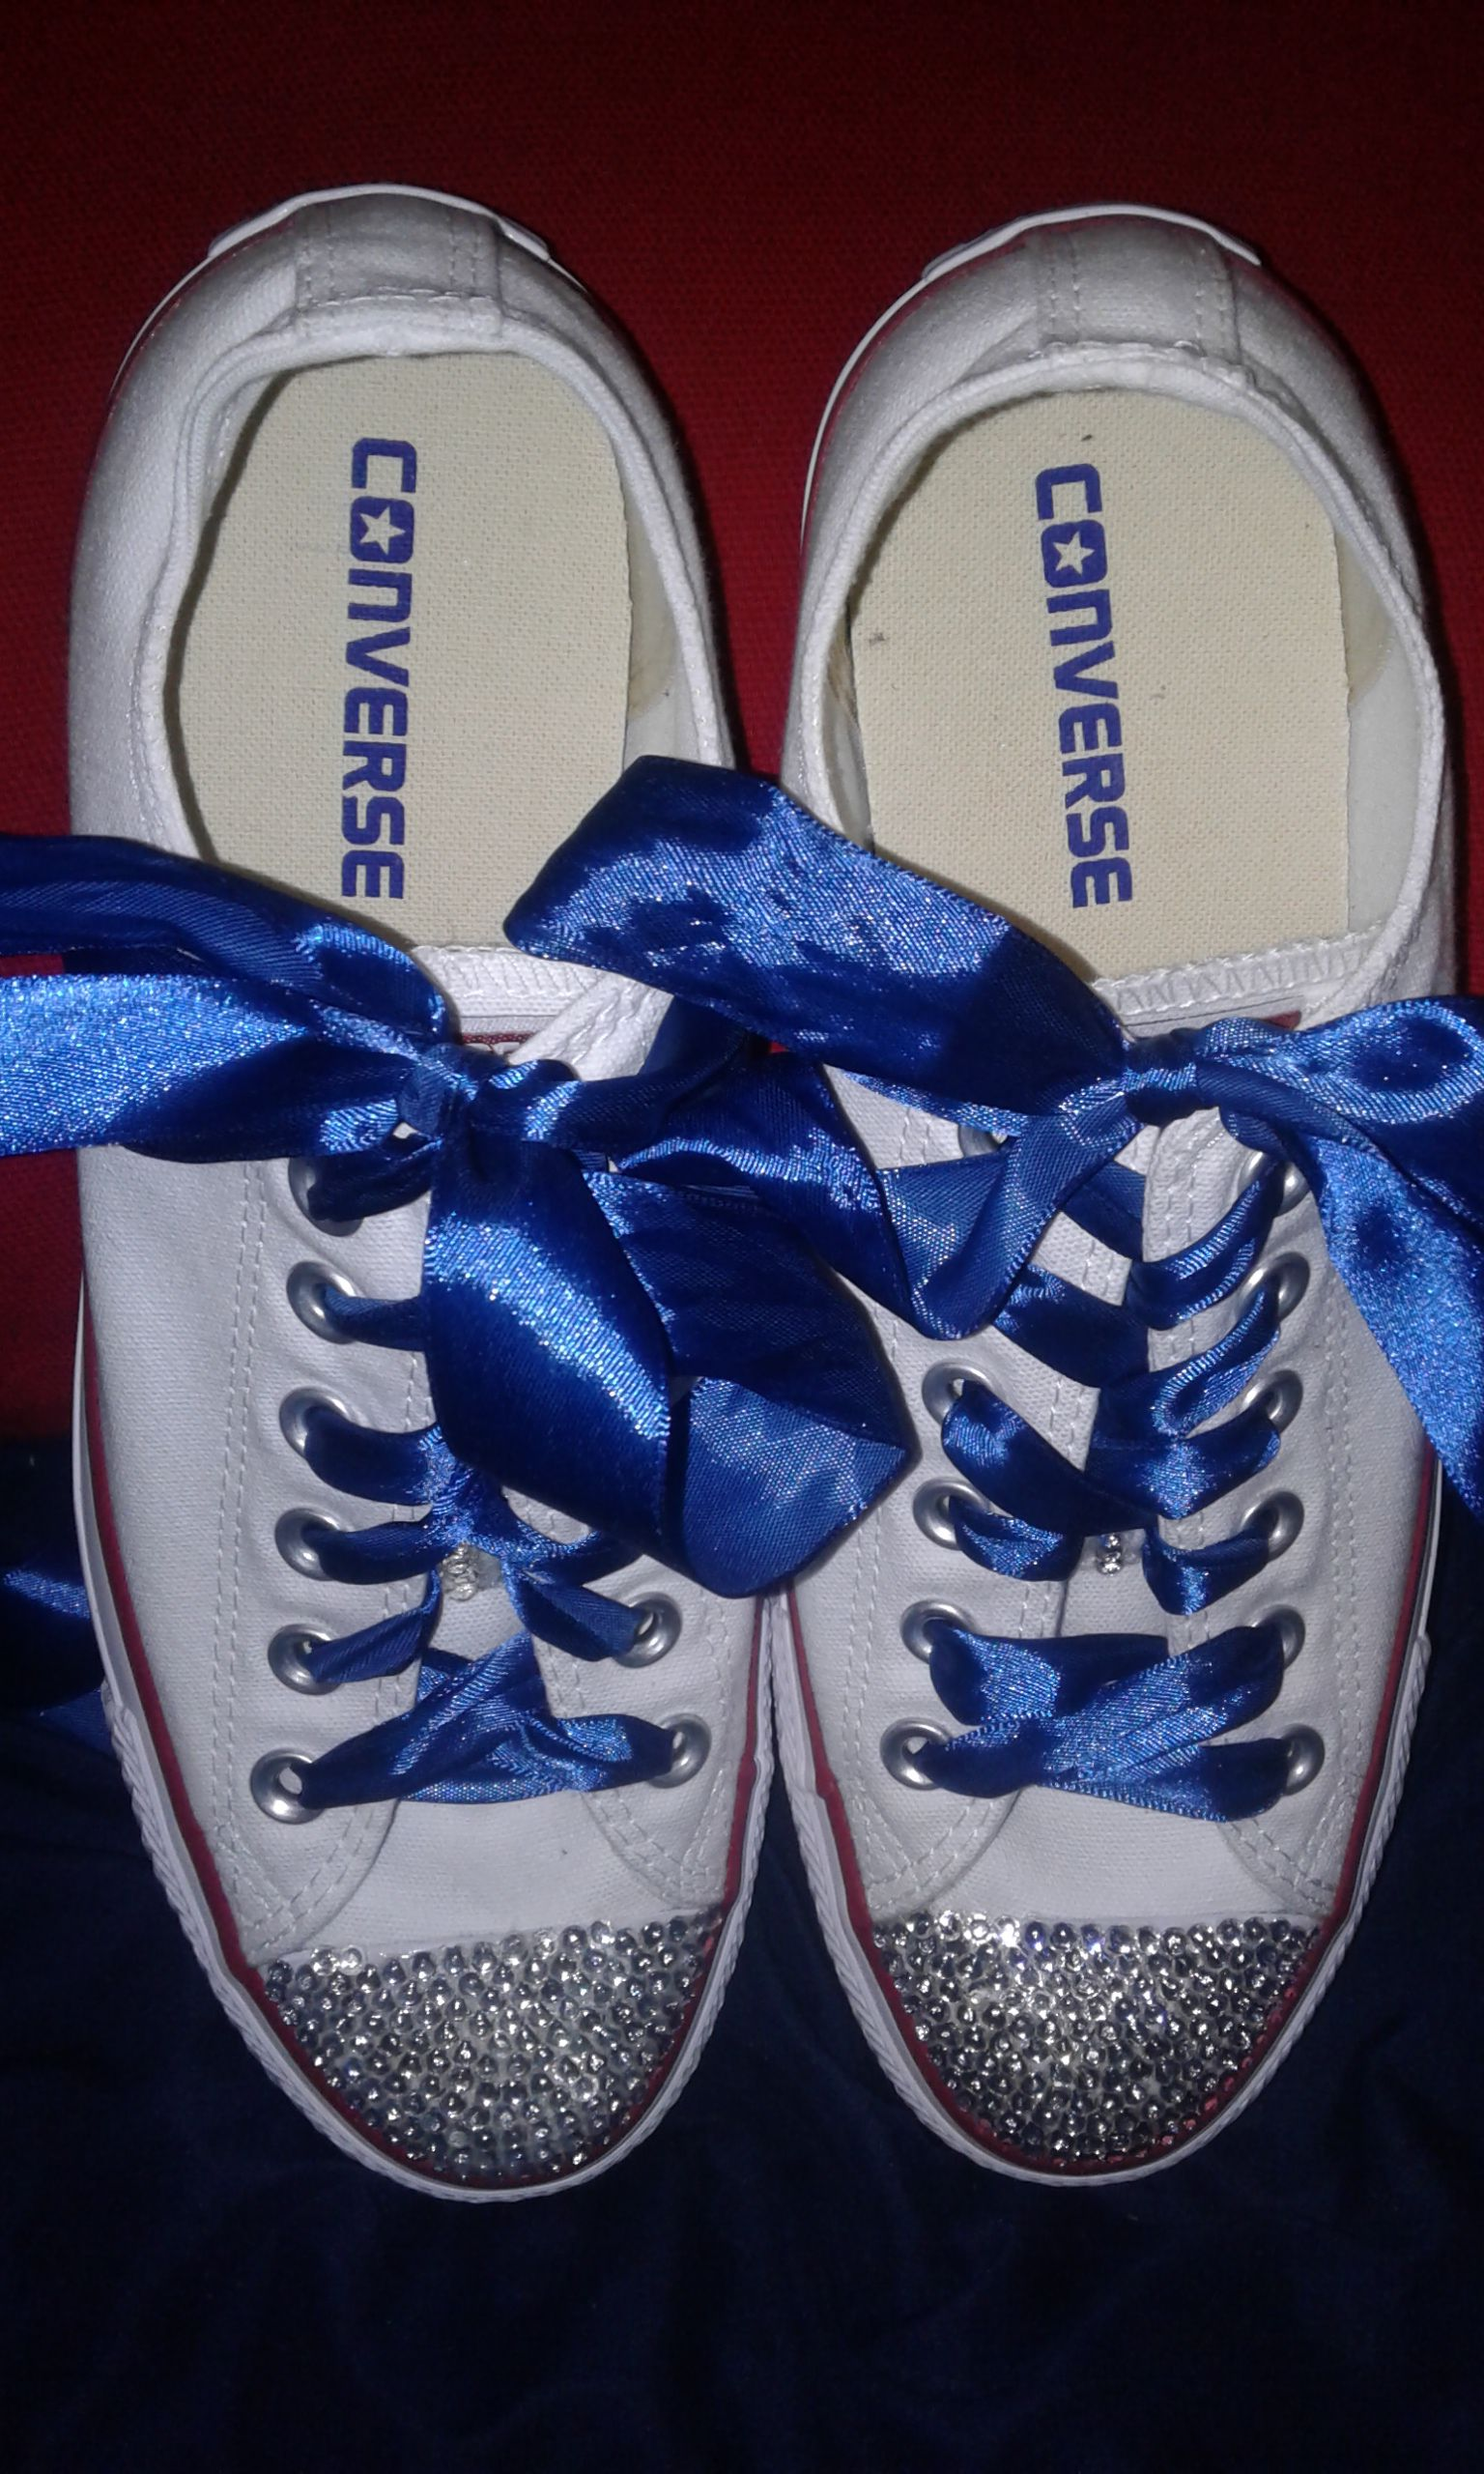 wedding out shoes sneakers party tennis converse bling blinged chuck taylors